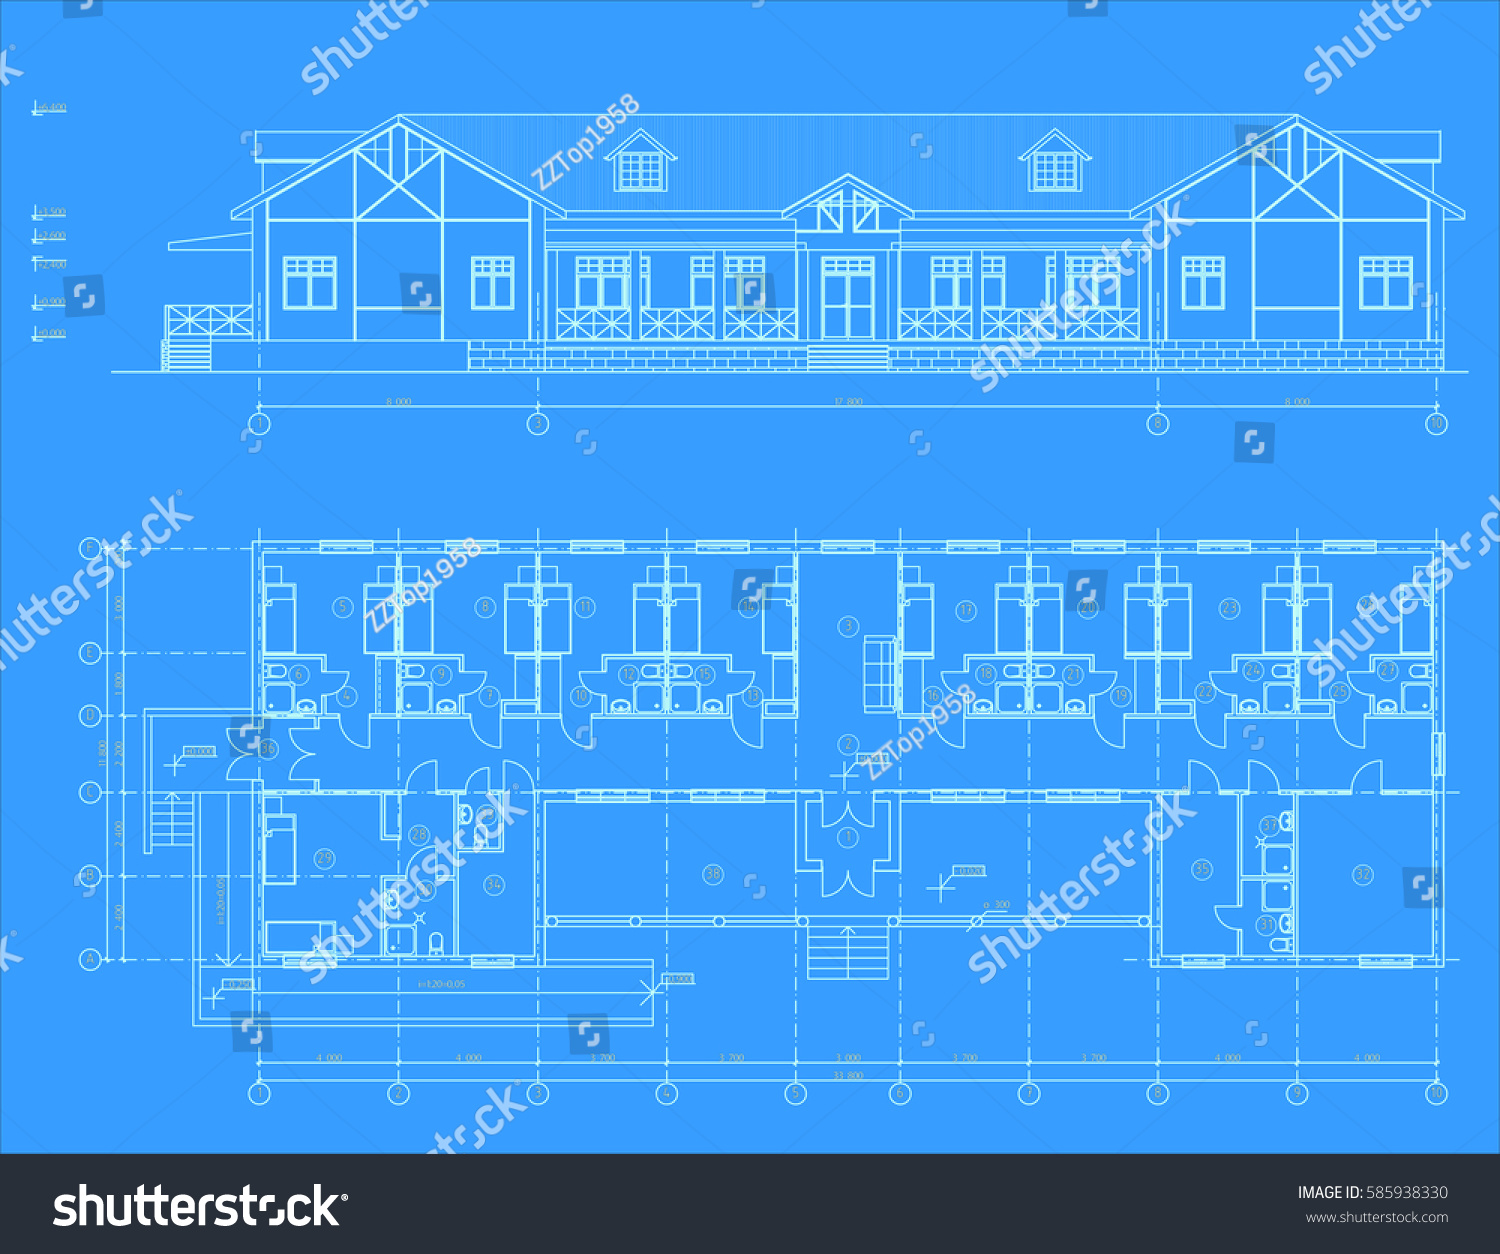 Authors architectural project country hotel blueprint stock vector the authors architectural project of the country hotel the blueprint vector malvernweather Image collections